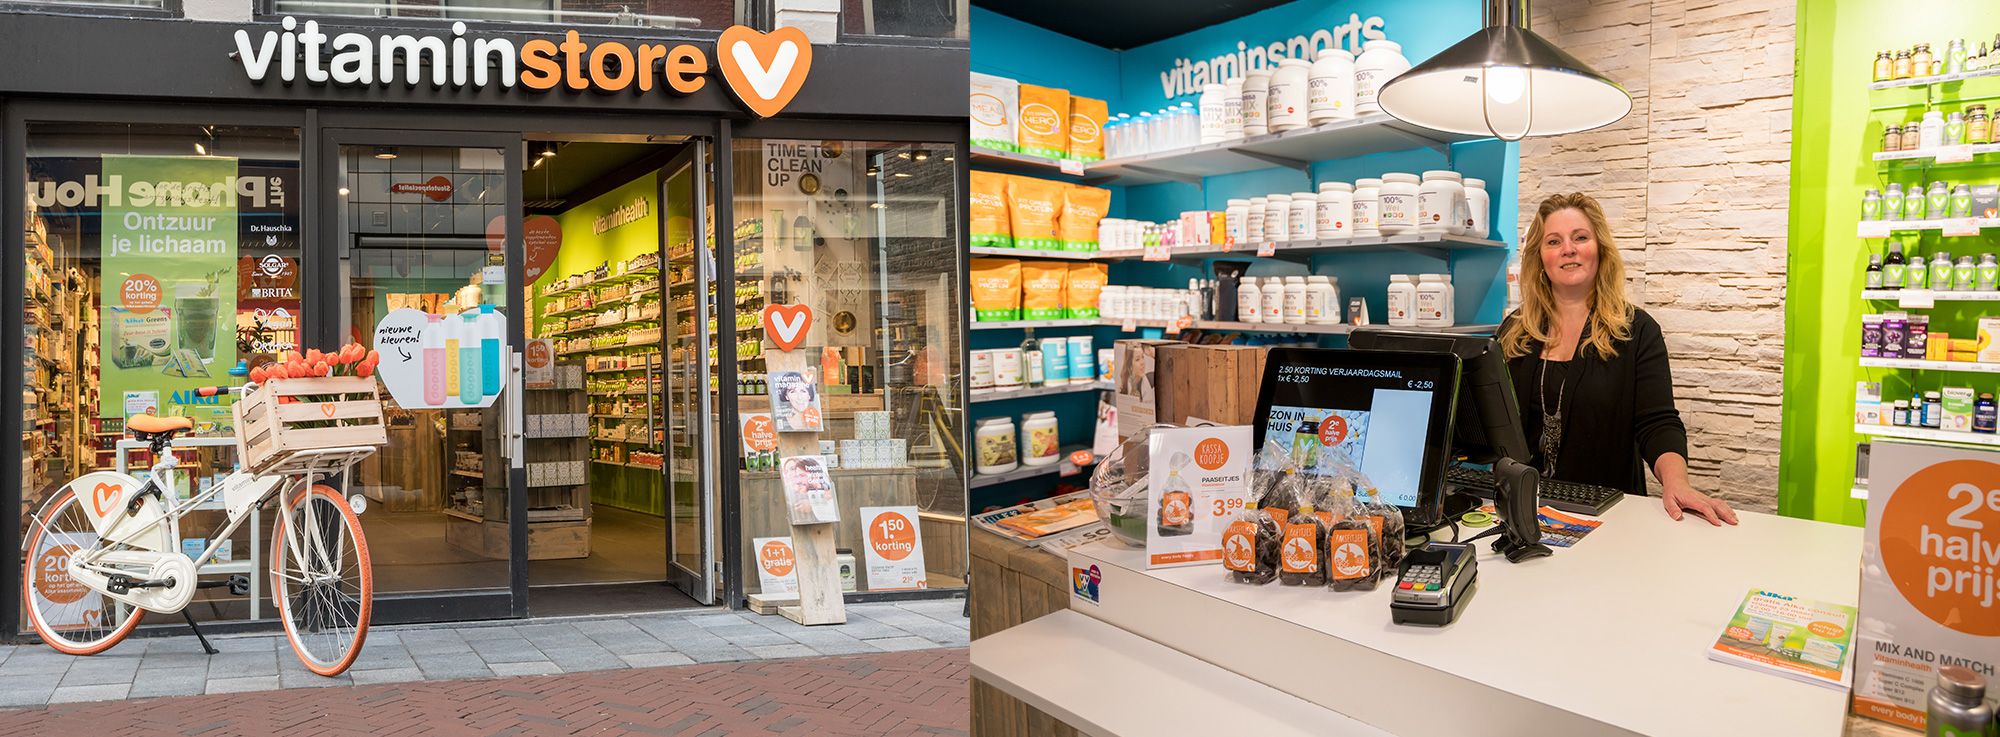 Marketing Campagne Voor de VitaminStores